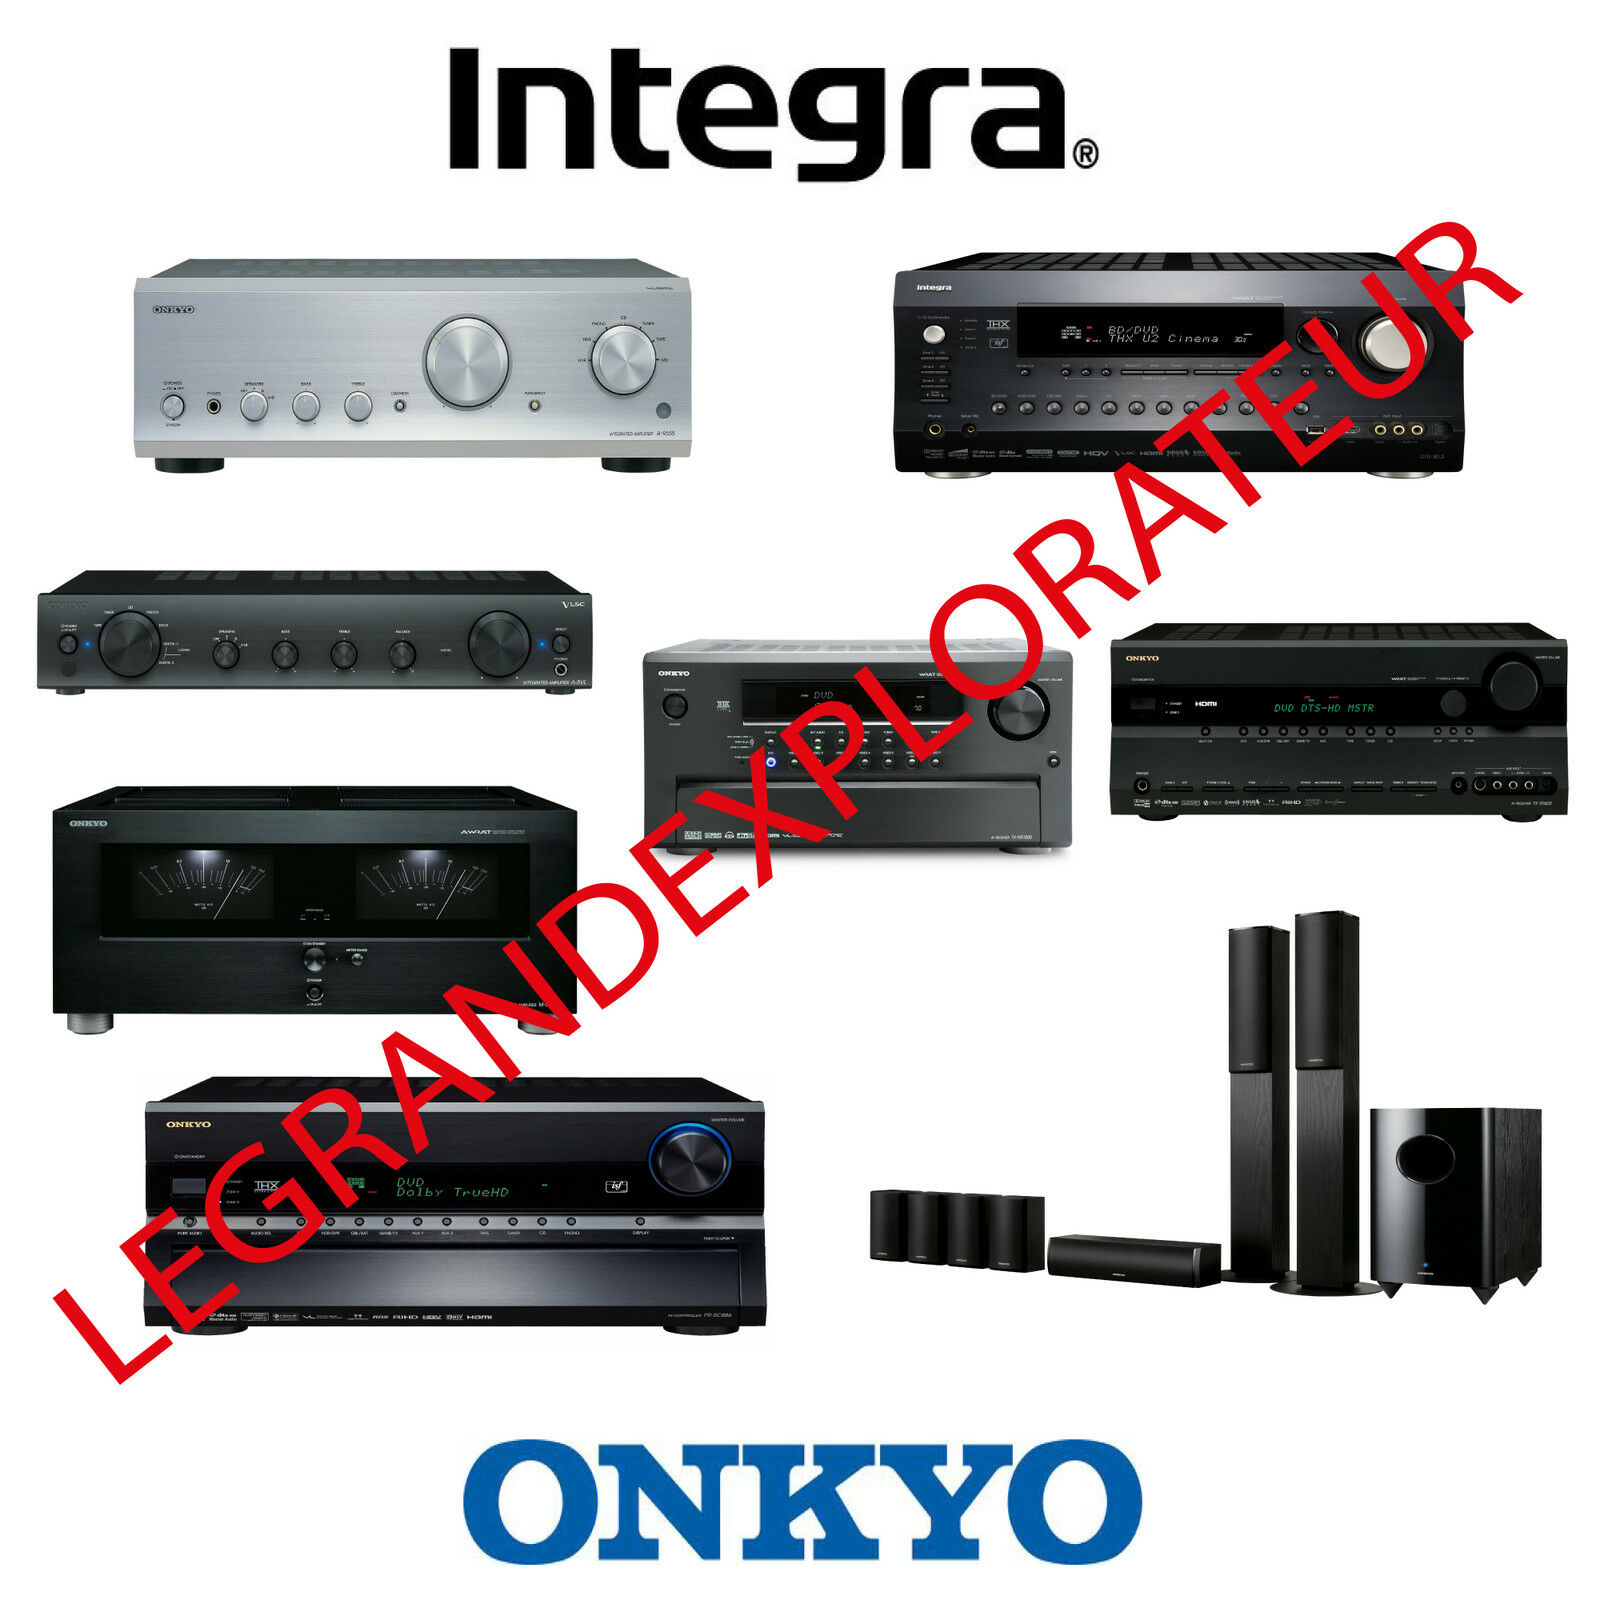 Ultimate ONKYO & INTEGRA Repair Service manual & Schematics 830 PDF on DVD  1 of 1FREE Shipping See More